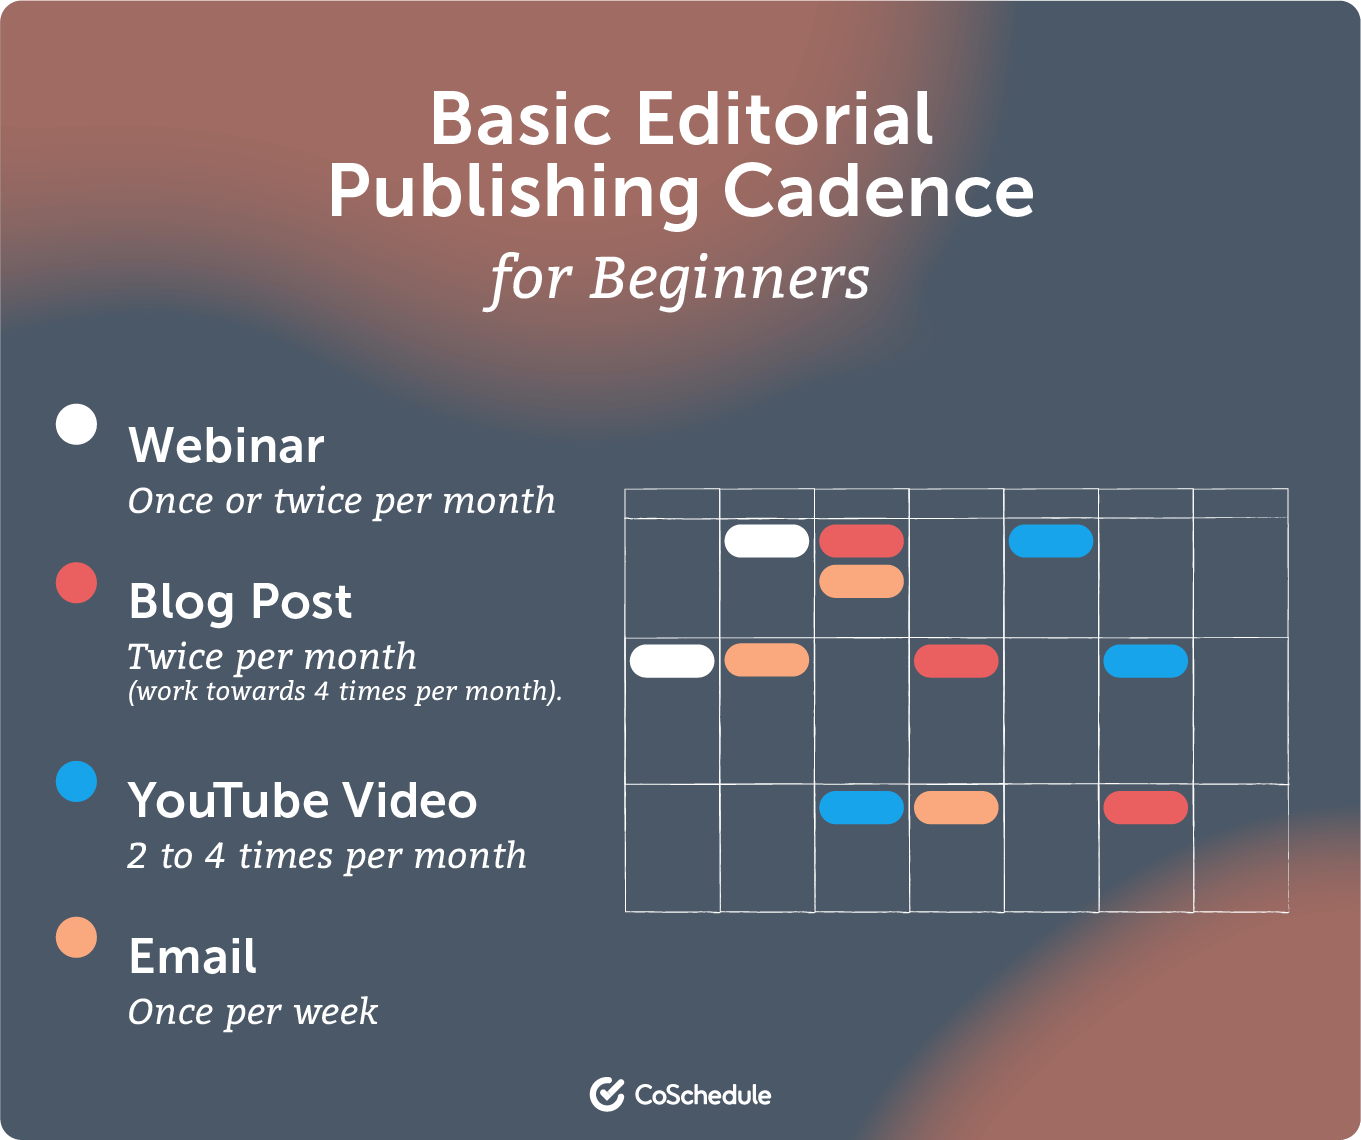 Basic editorial publishing cadence for beginners